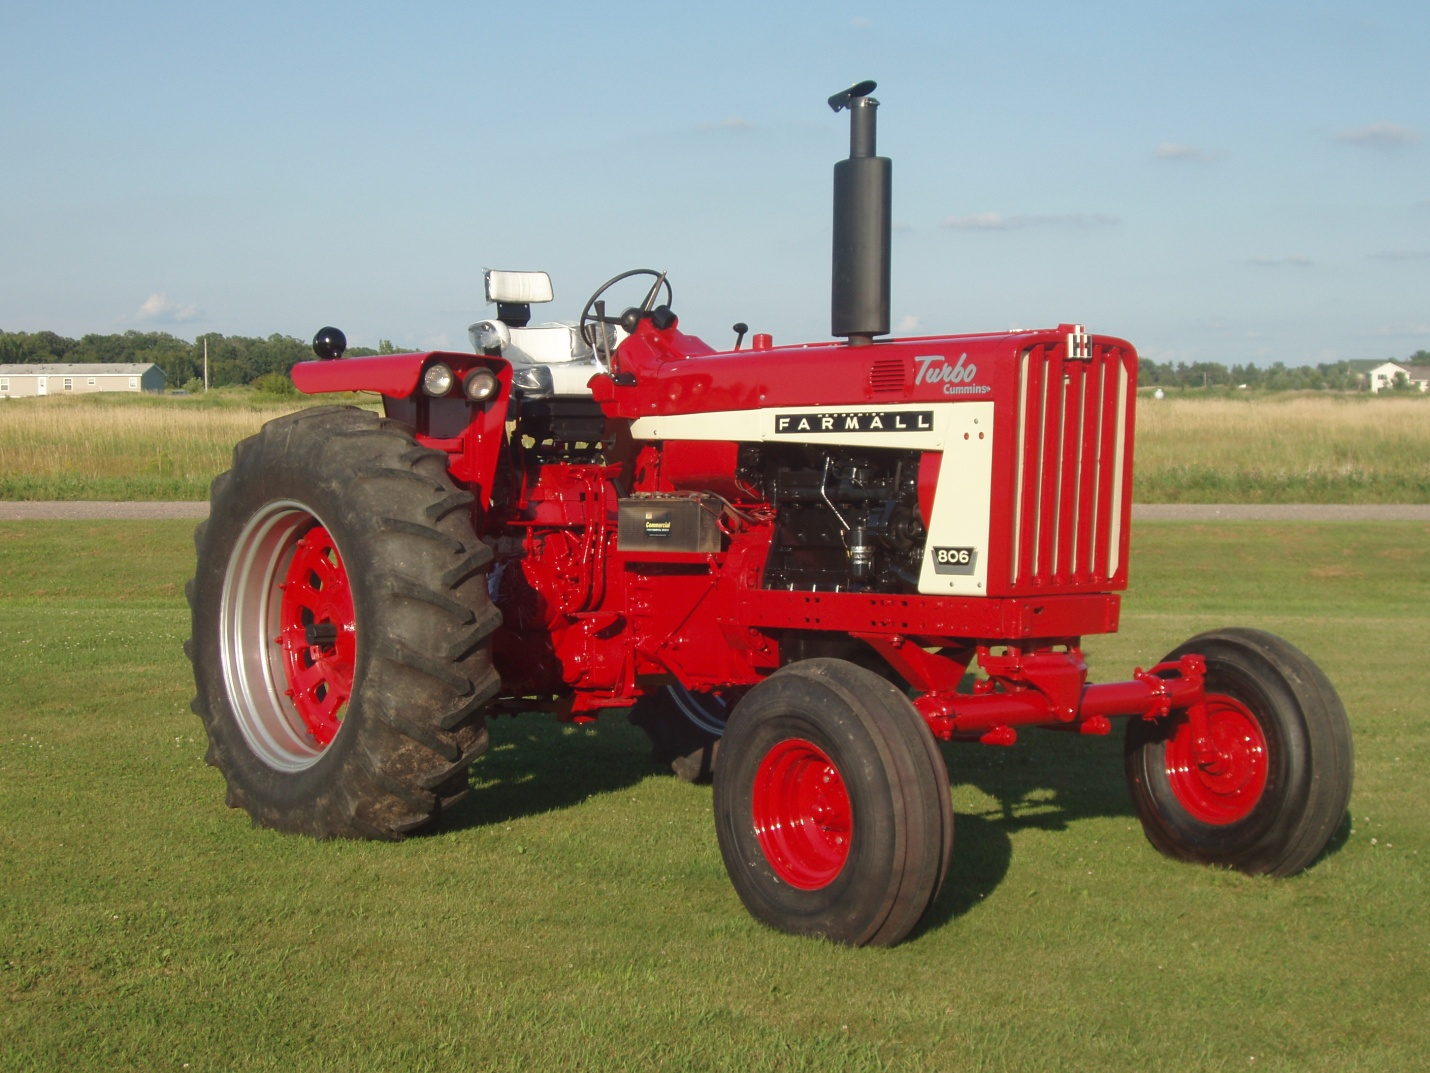 806 ih turbo tractor also in 2012 i was able to get a super mta